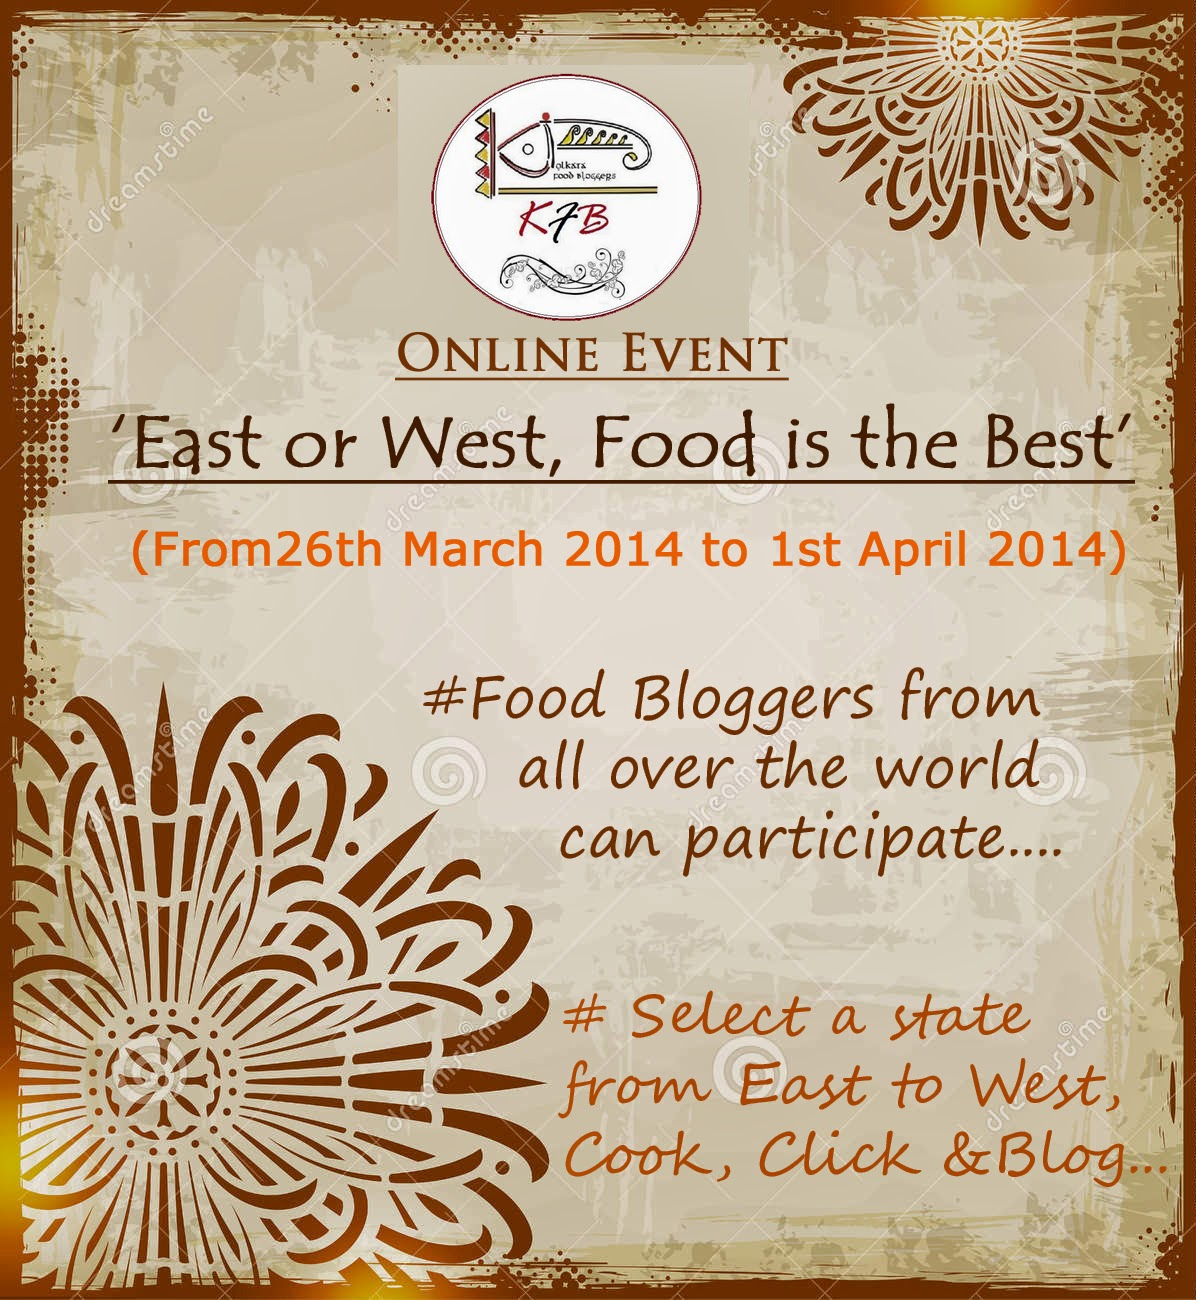 http://kolkatafoodbloggers.blogspot.in/2014/03/online-event-east-or-west-food-is-best.html